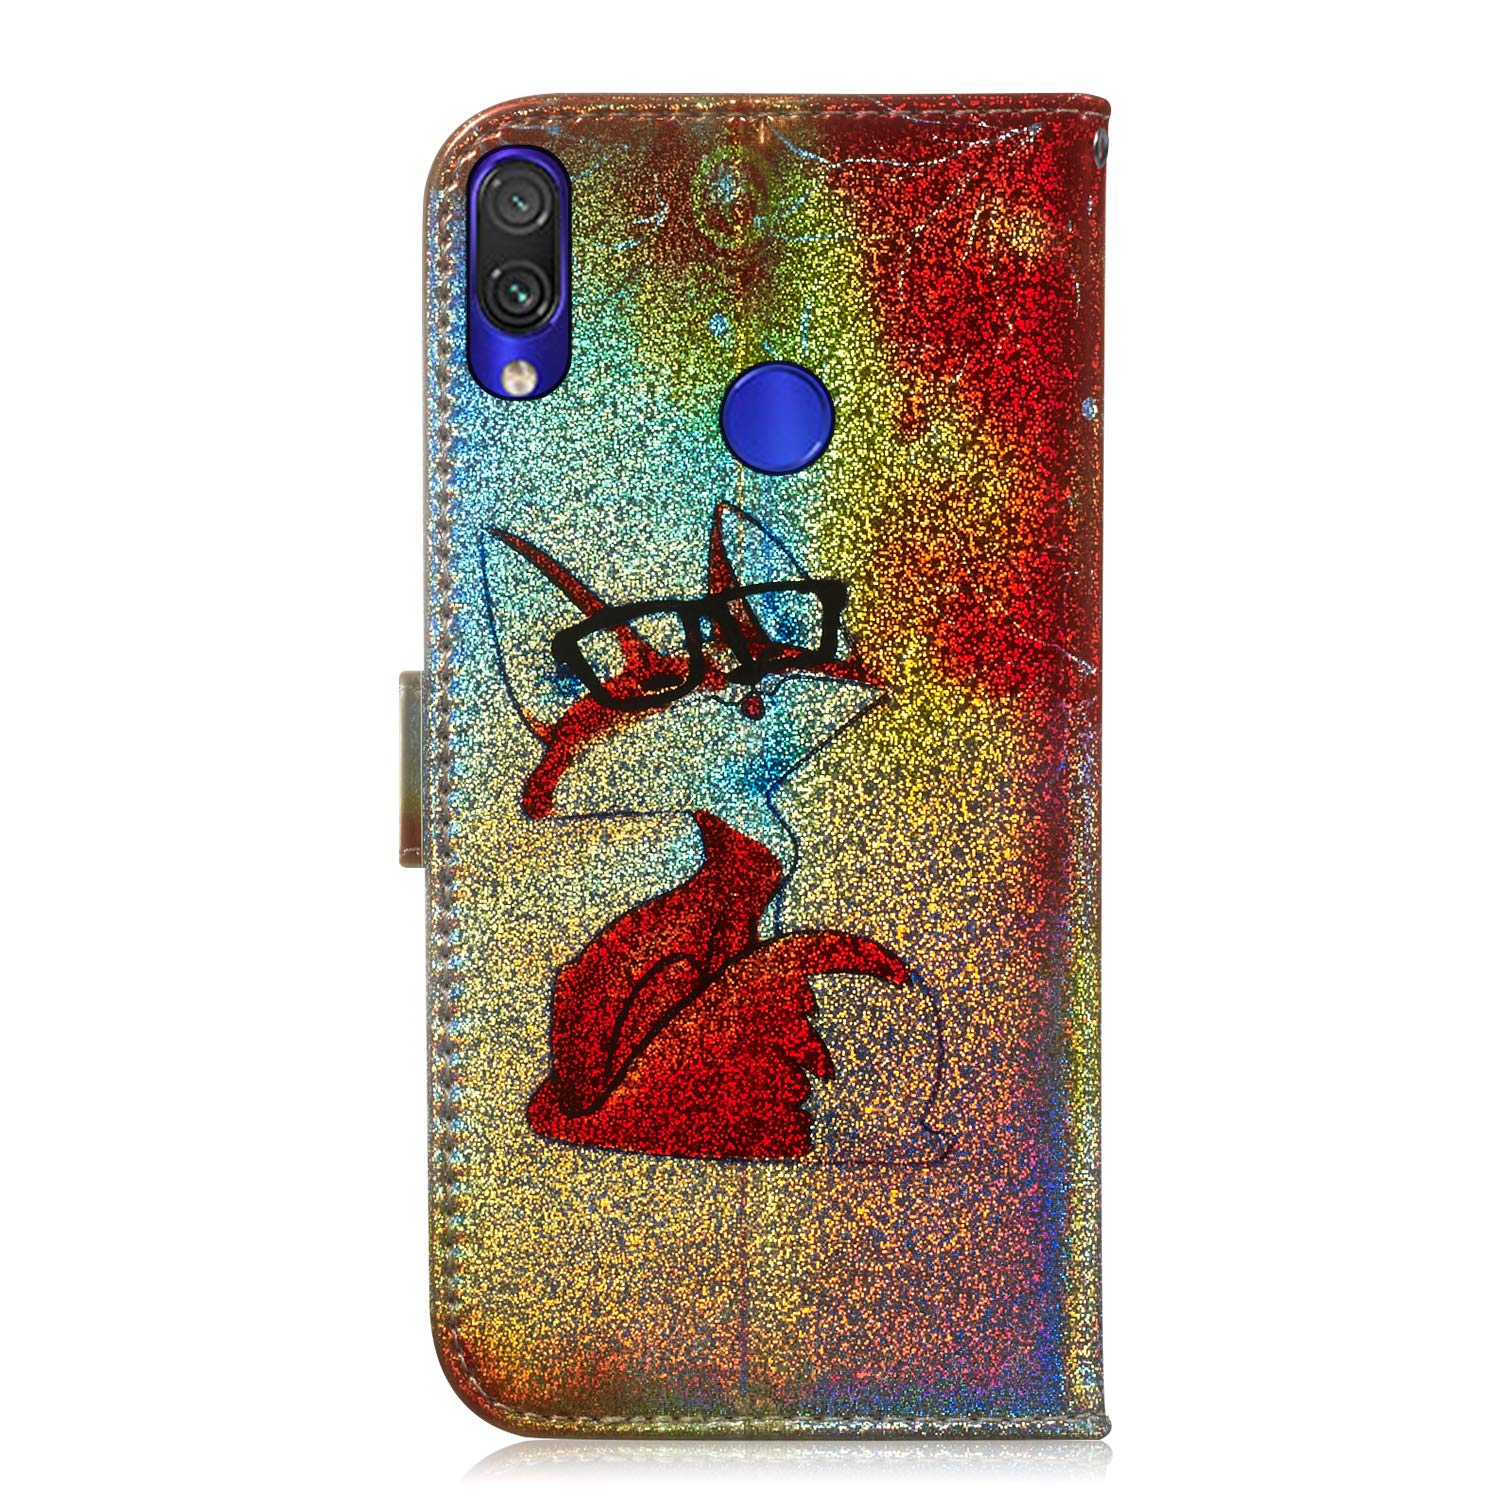 With Tempered Glass Screen Protector Cat Fatcatparadise Case for Xiaomi Mi A3 Bling Glitter Flip Wallet Back Case,Colorful Cute Pattern Design Flip PU Leather Case